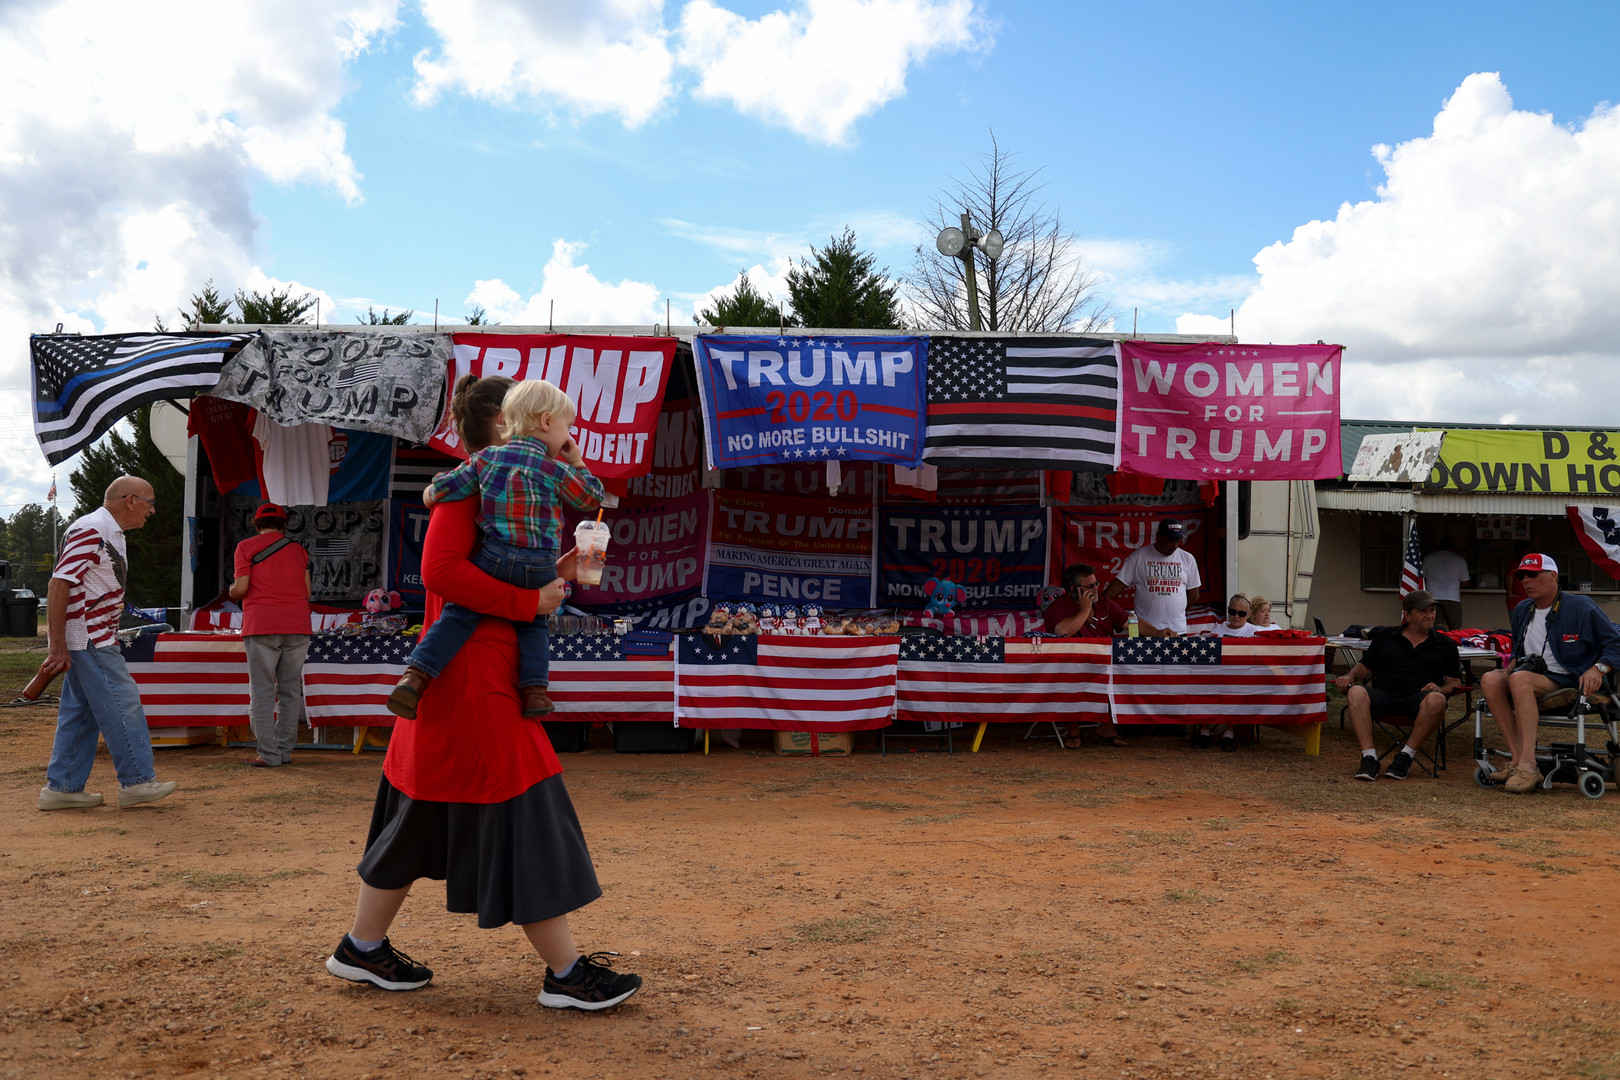 """People gather at the Athens Fairgrounds in Athens, Georgia on Saturday, Oct. 24, 2020 for an """"Athens for America"""" event. The event was organized by a group of conservative residents and included food, vendors, speakers and live music."""